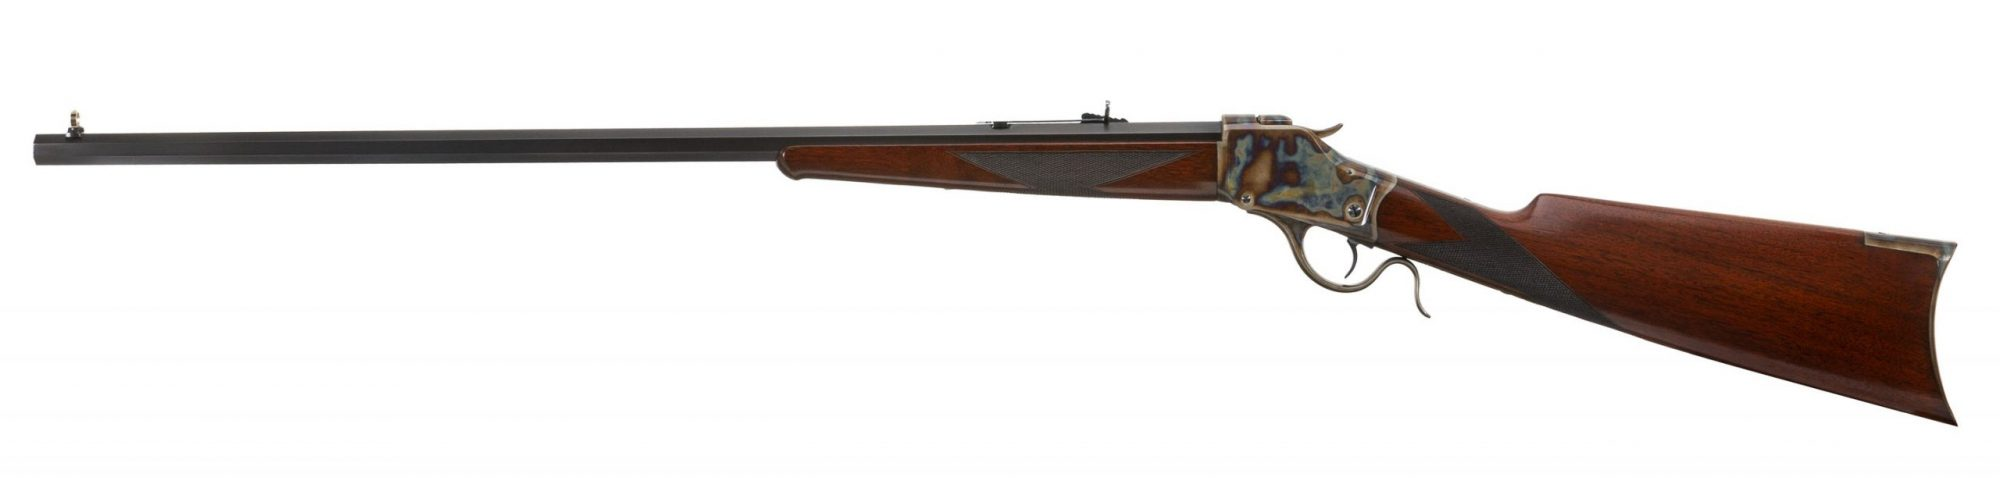 Photo of a Winchester Model 1885 from 1891, restored by Turnbull Restoration in 2006